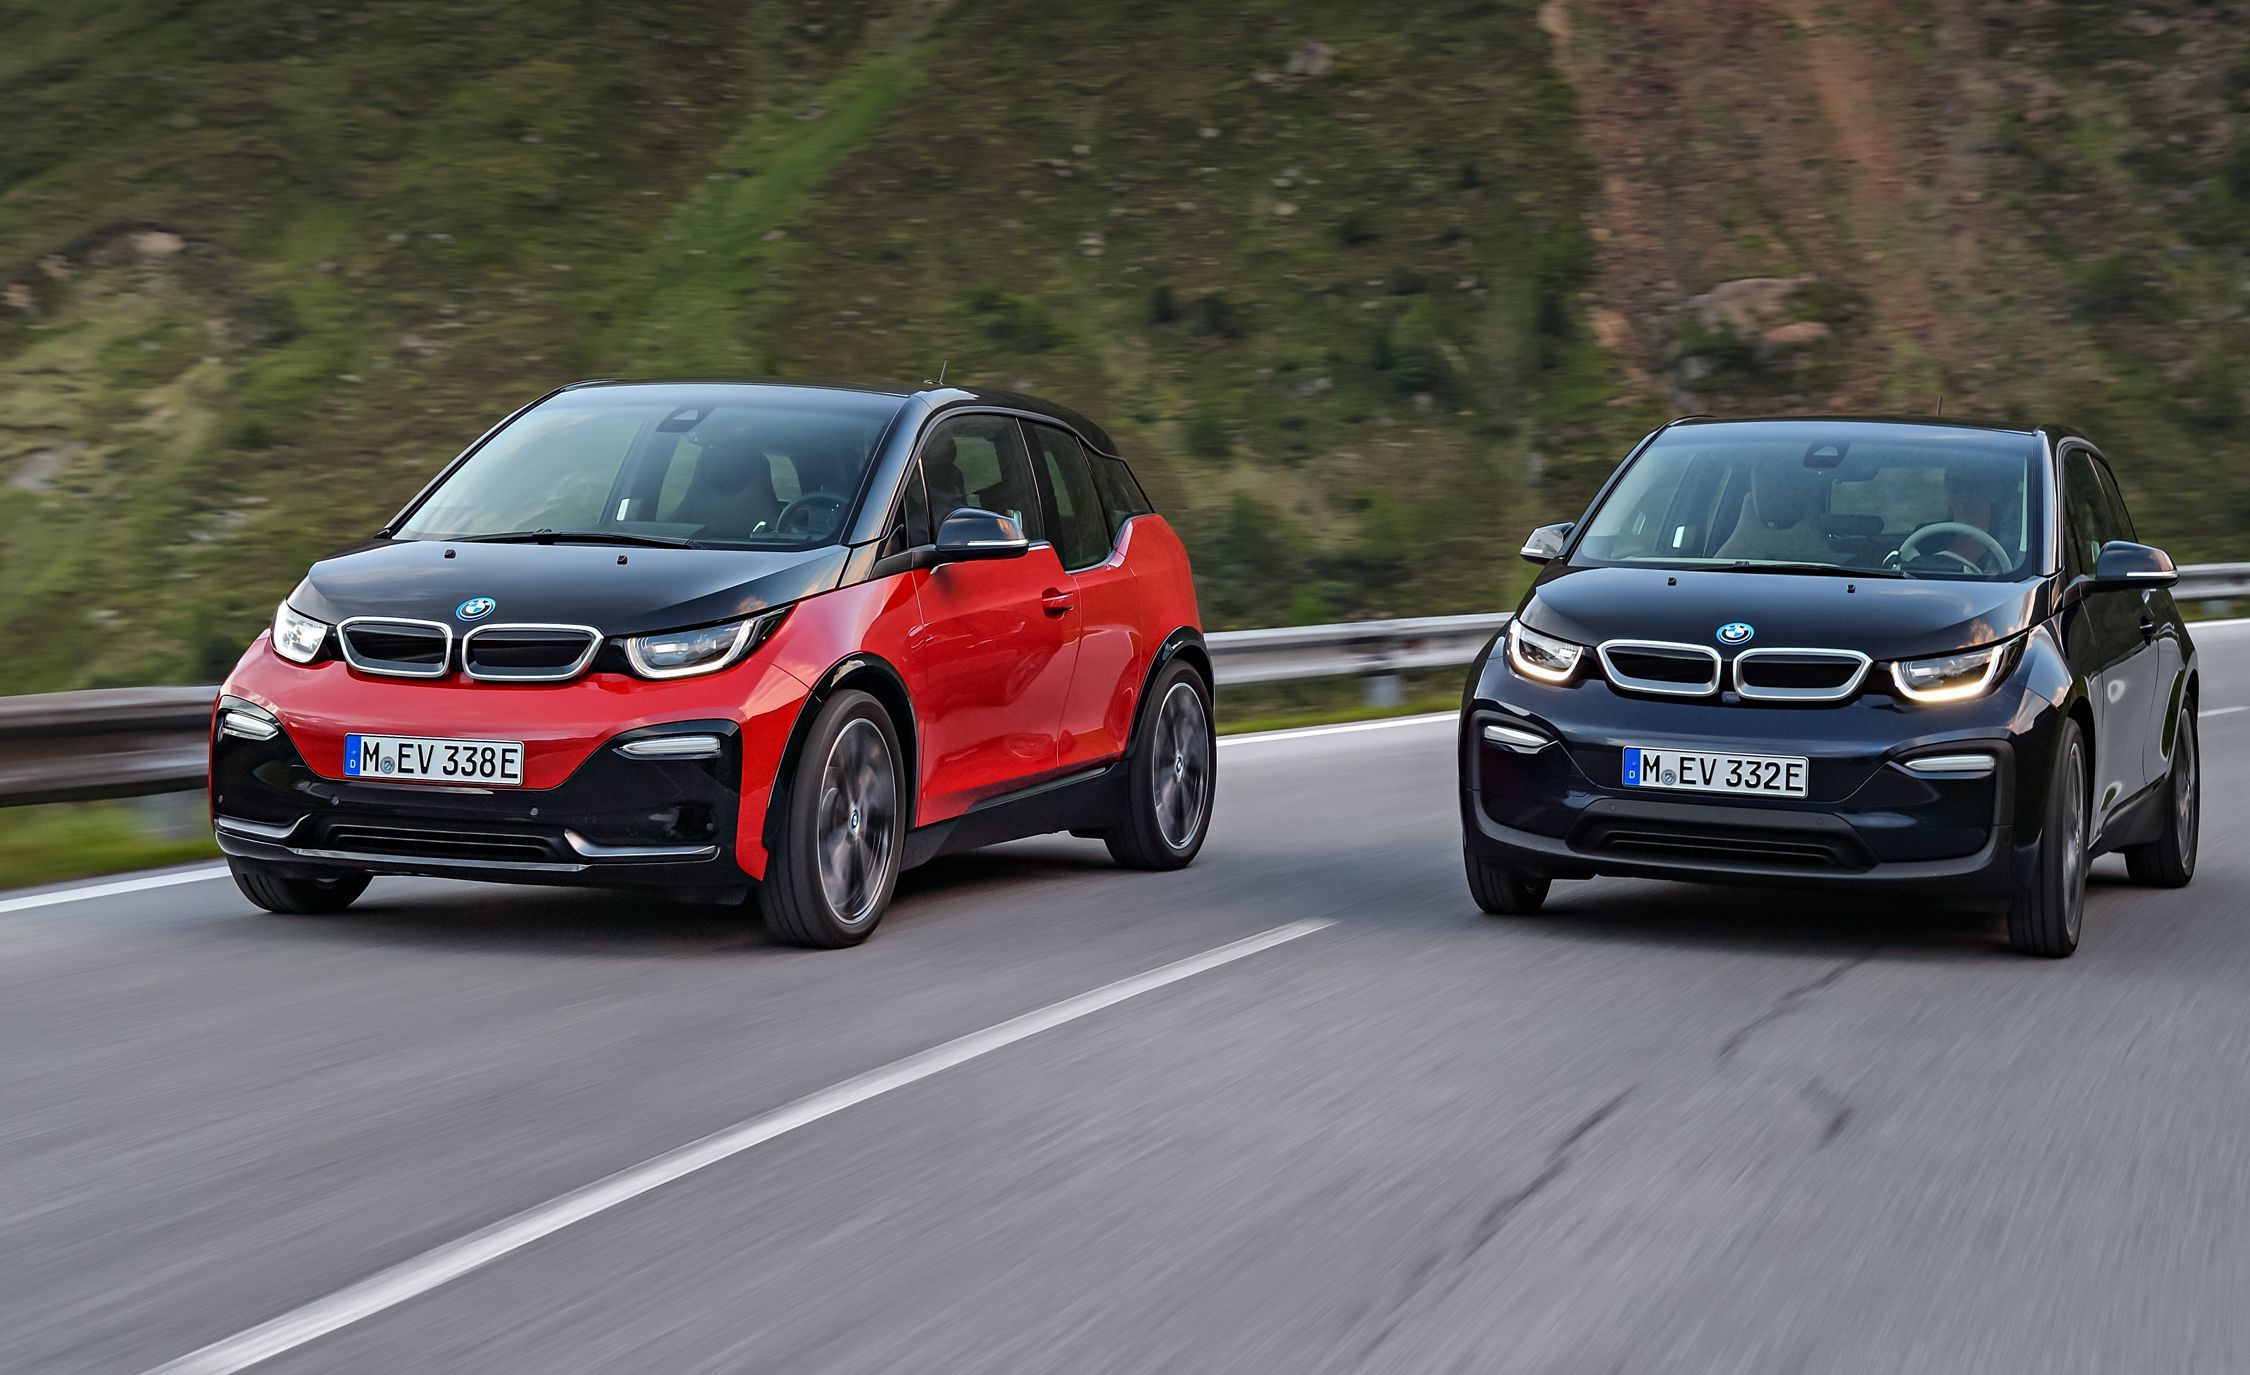 Both BMW i3 and i8 use carbon-fiber reinforced plastic that makes them light and easy to manage.